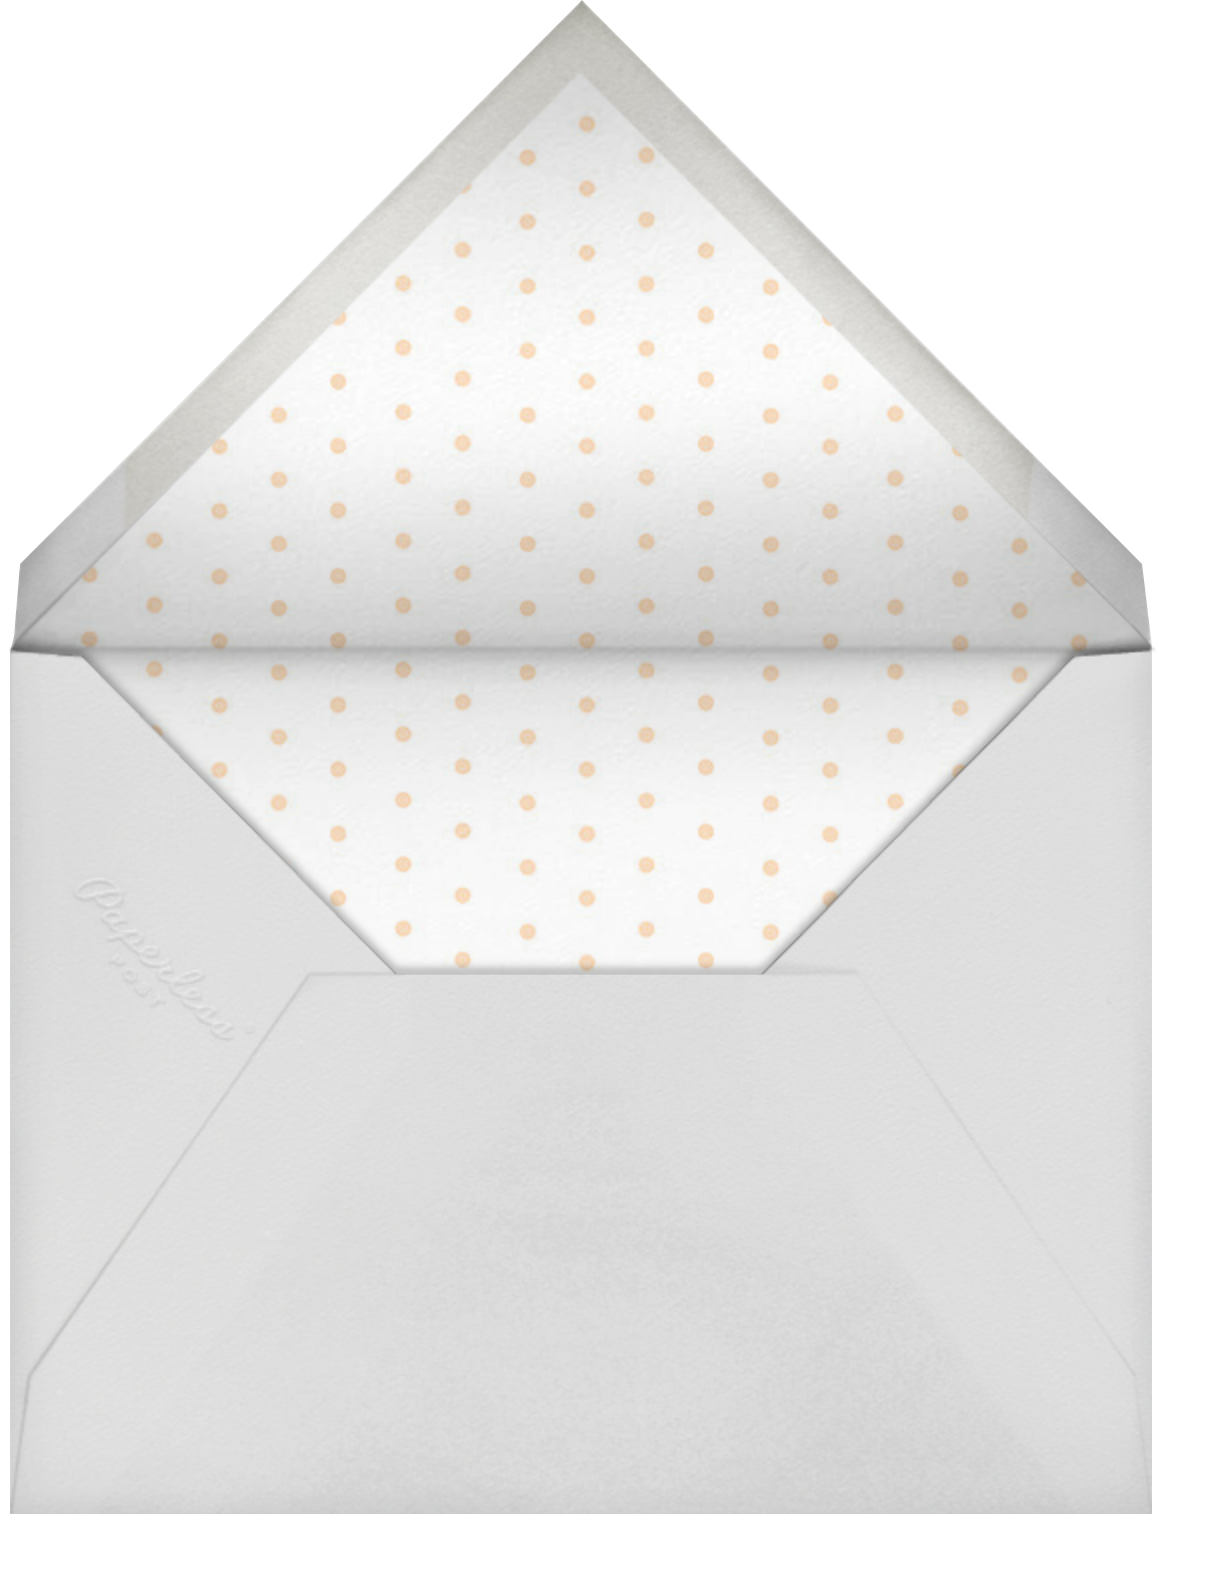 Mariachi - Rifle Paper Co. - Cinco de Mayo - envelope back